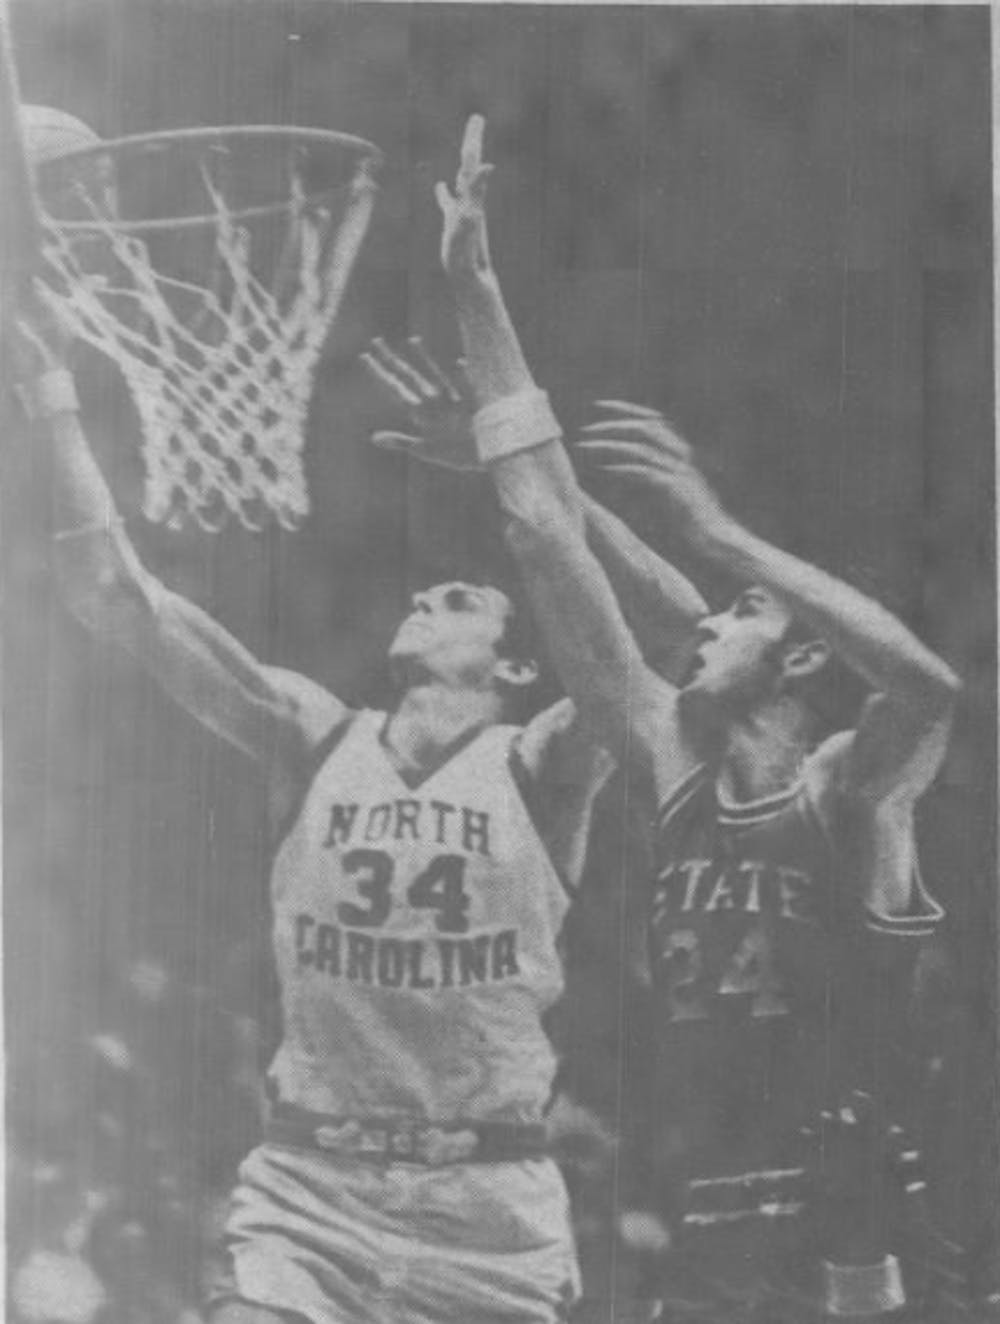 Former UNC men's basketball player Bobby Jones elected to Naismith Hall of Fame